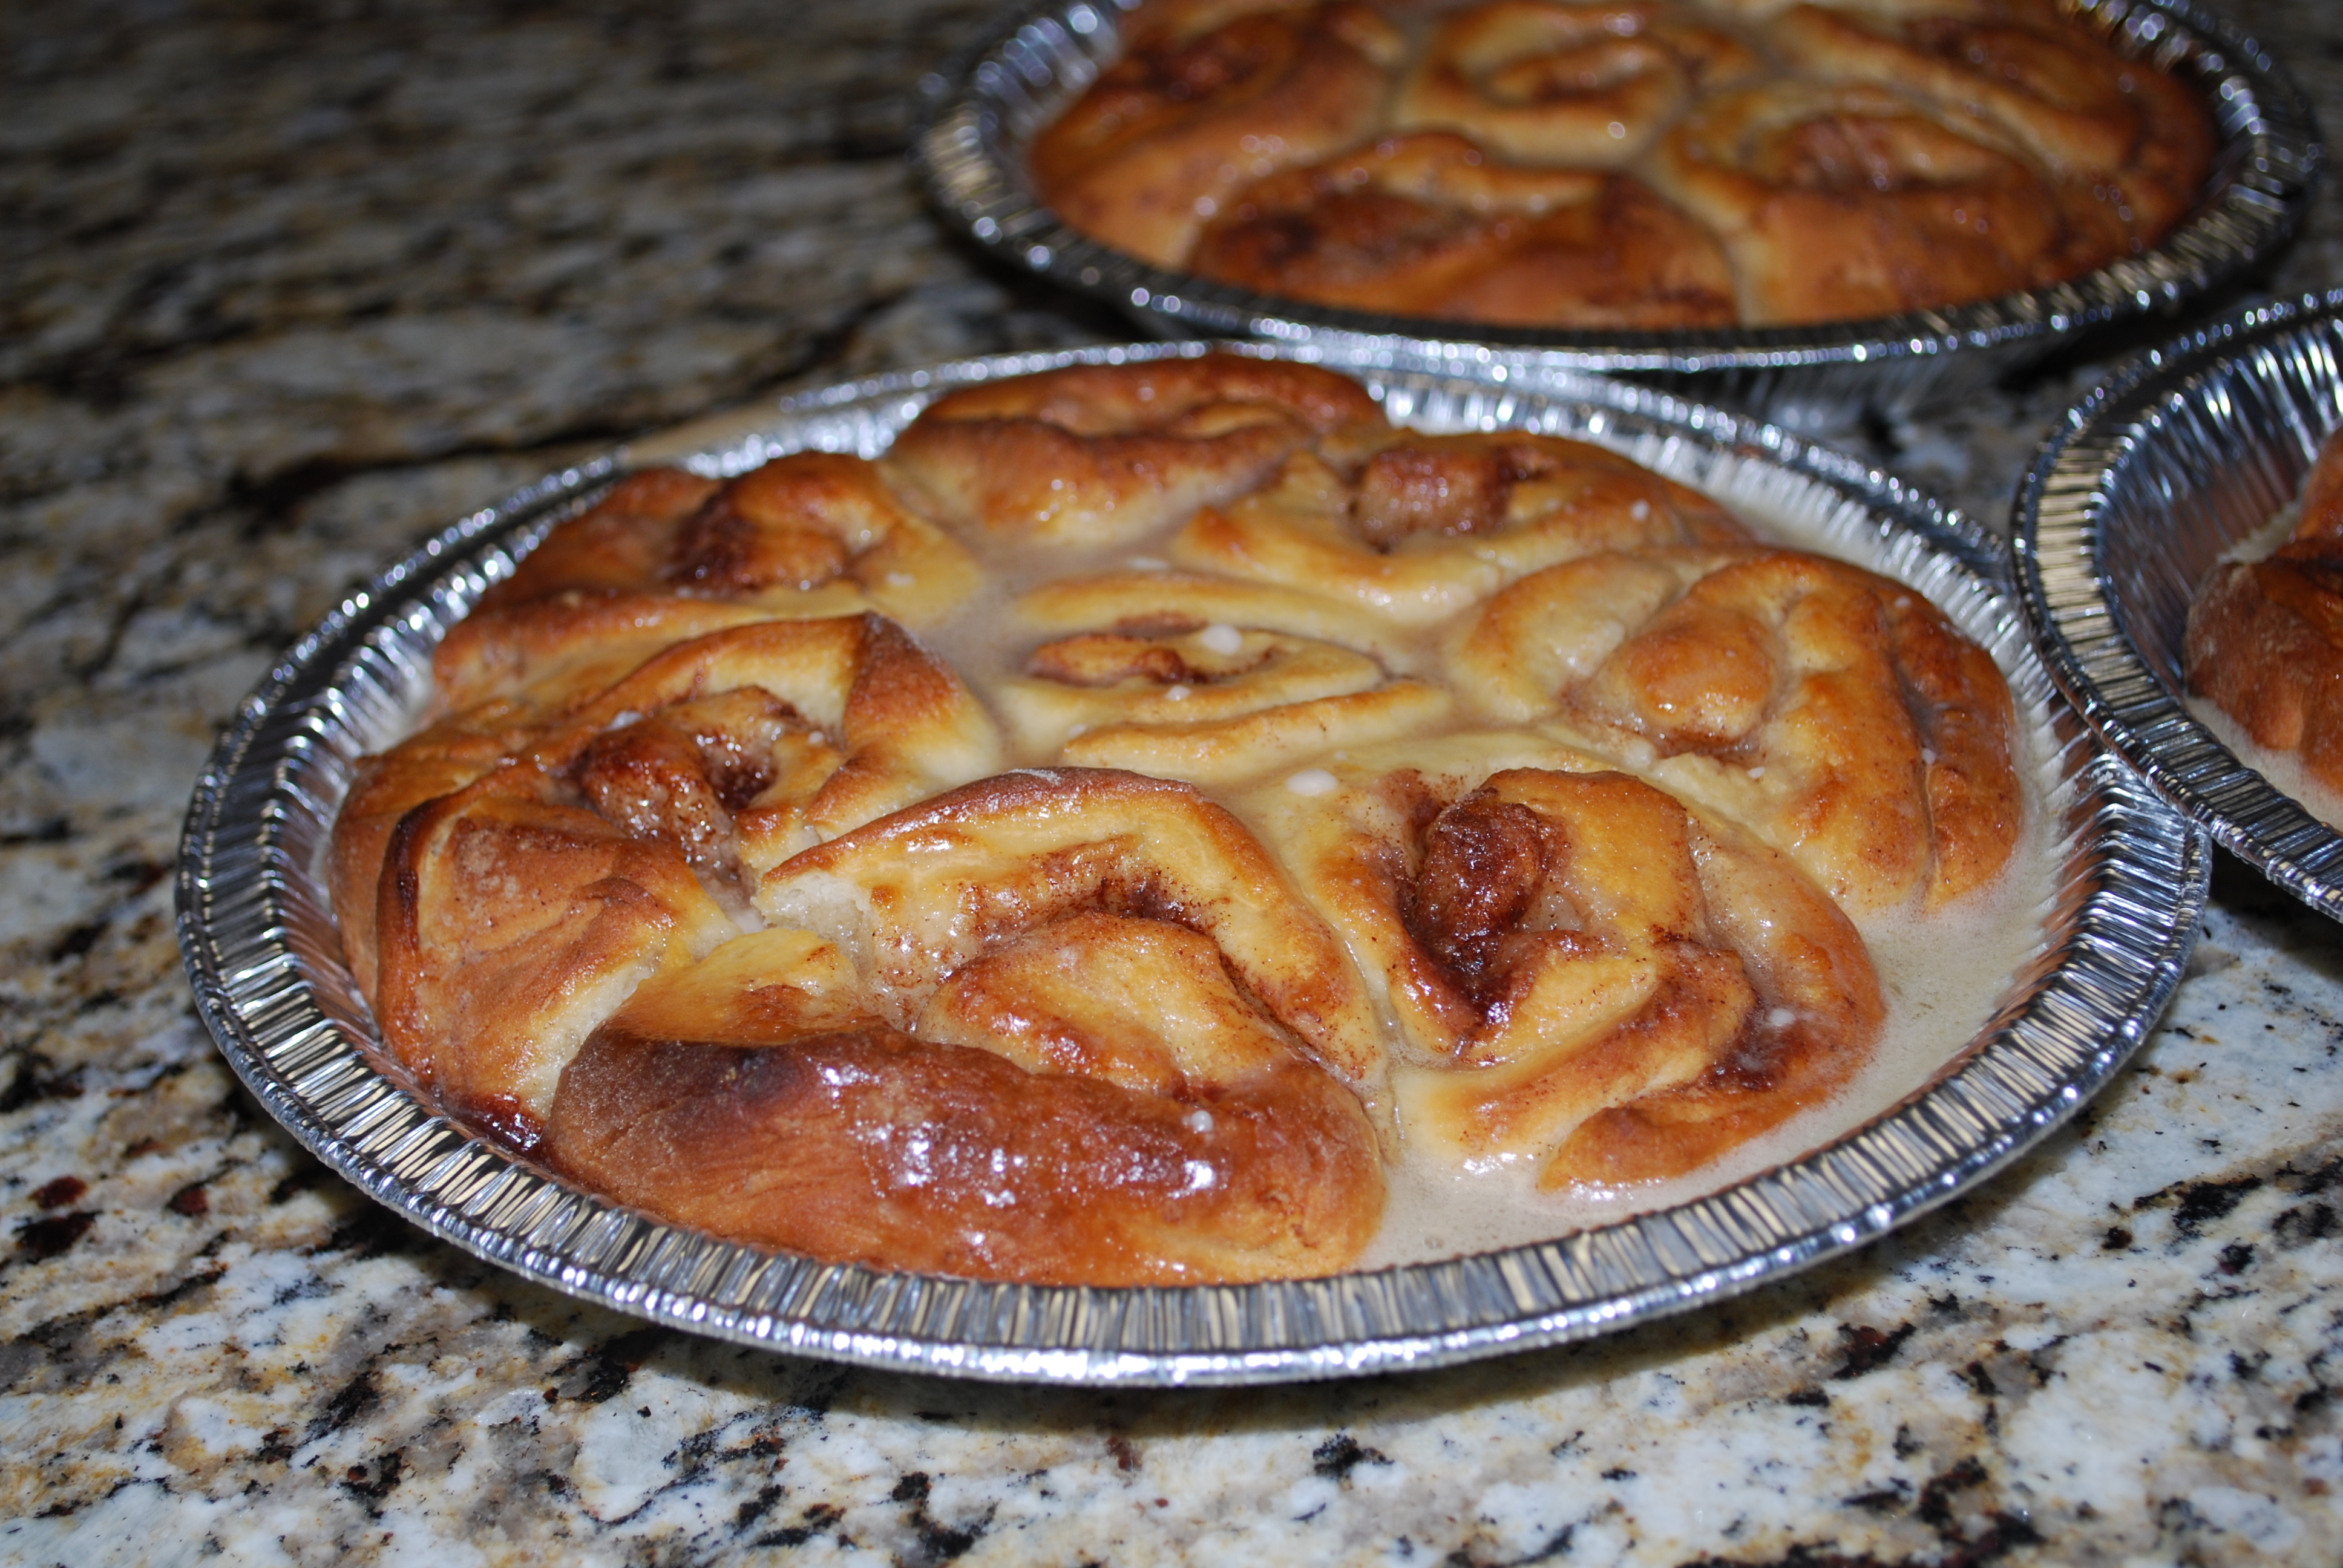 ok, so one more food shot...I made these cinnamon rolls from scratch!